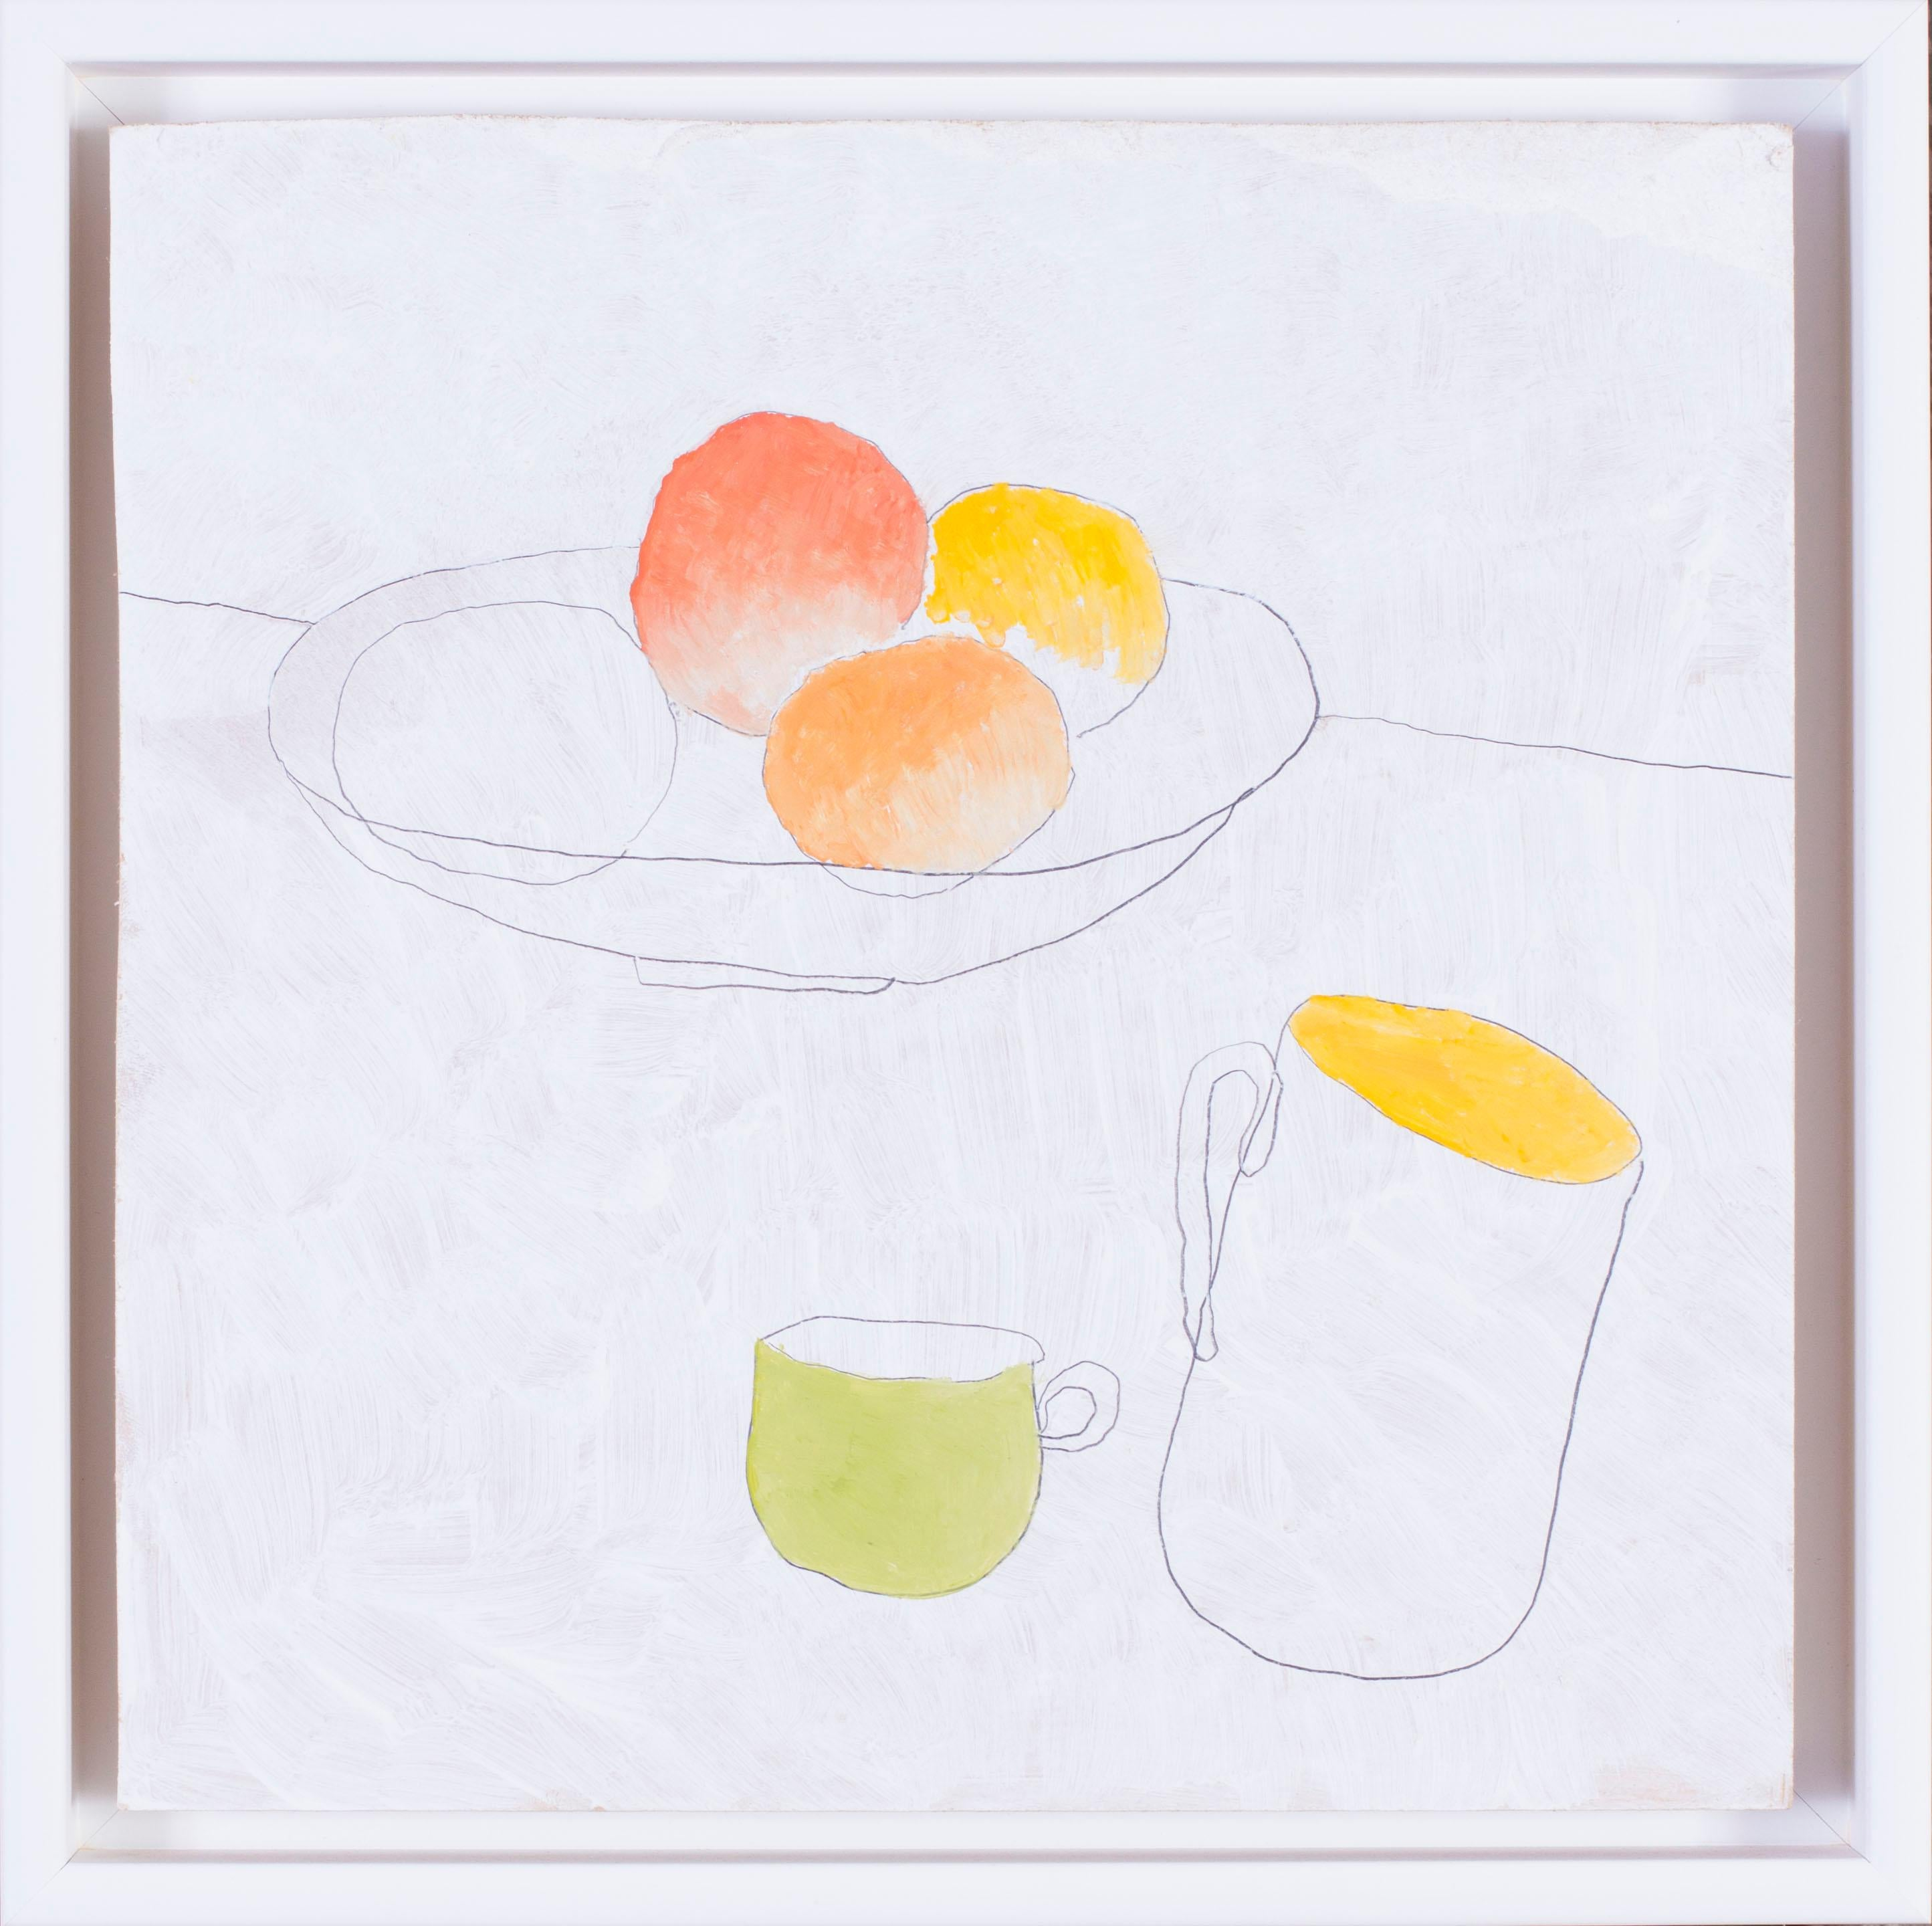 British, 21st Century abstract still life 'Fruit and cups'